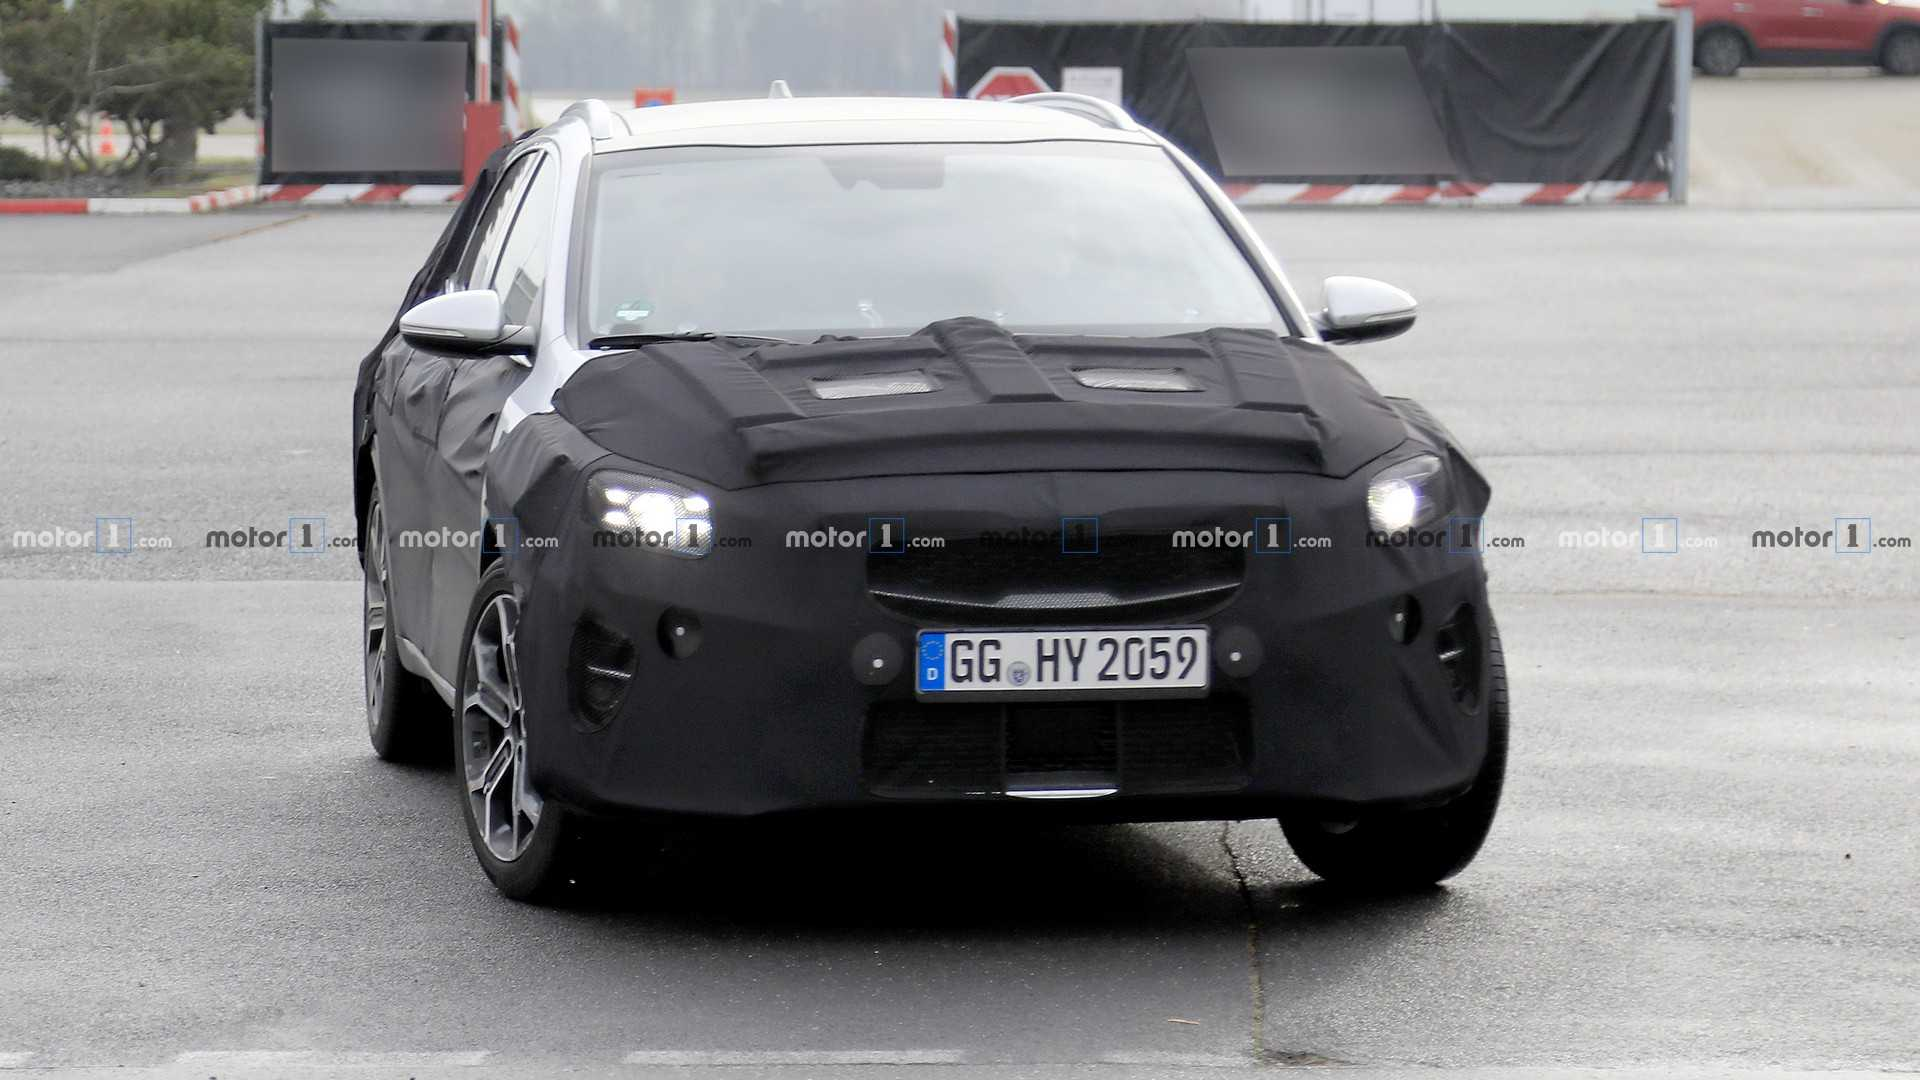 75 The Best Kia Ceed 2020 Picture